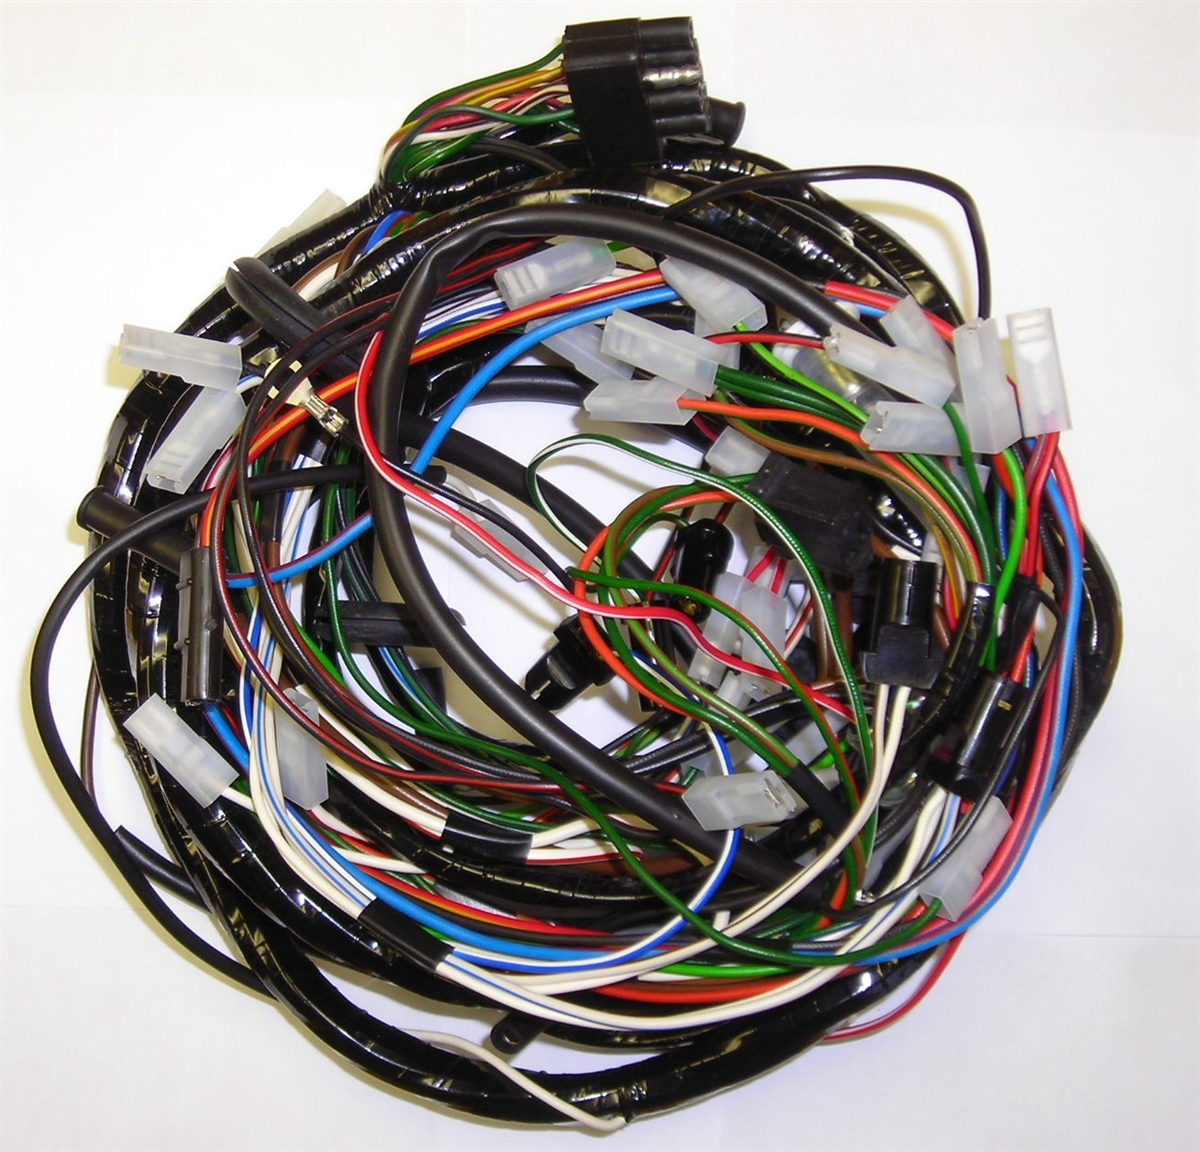 Land Rover Series 3 Main Wiring Harness Ends